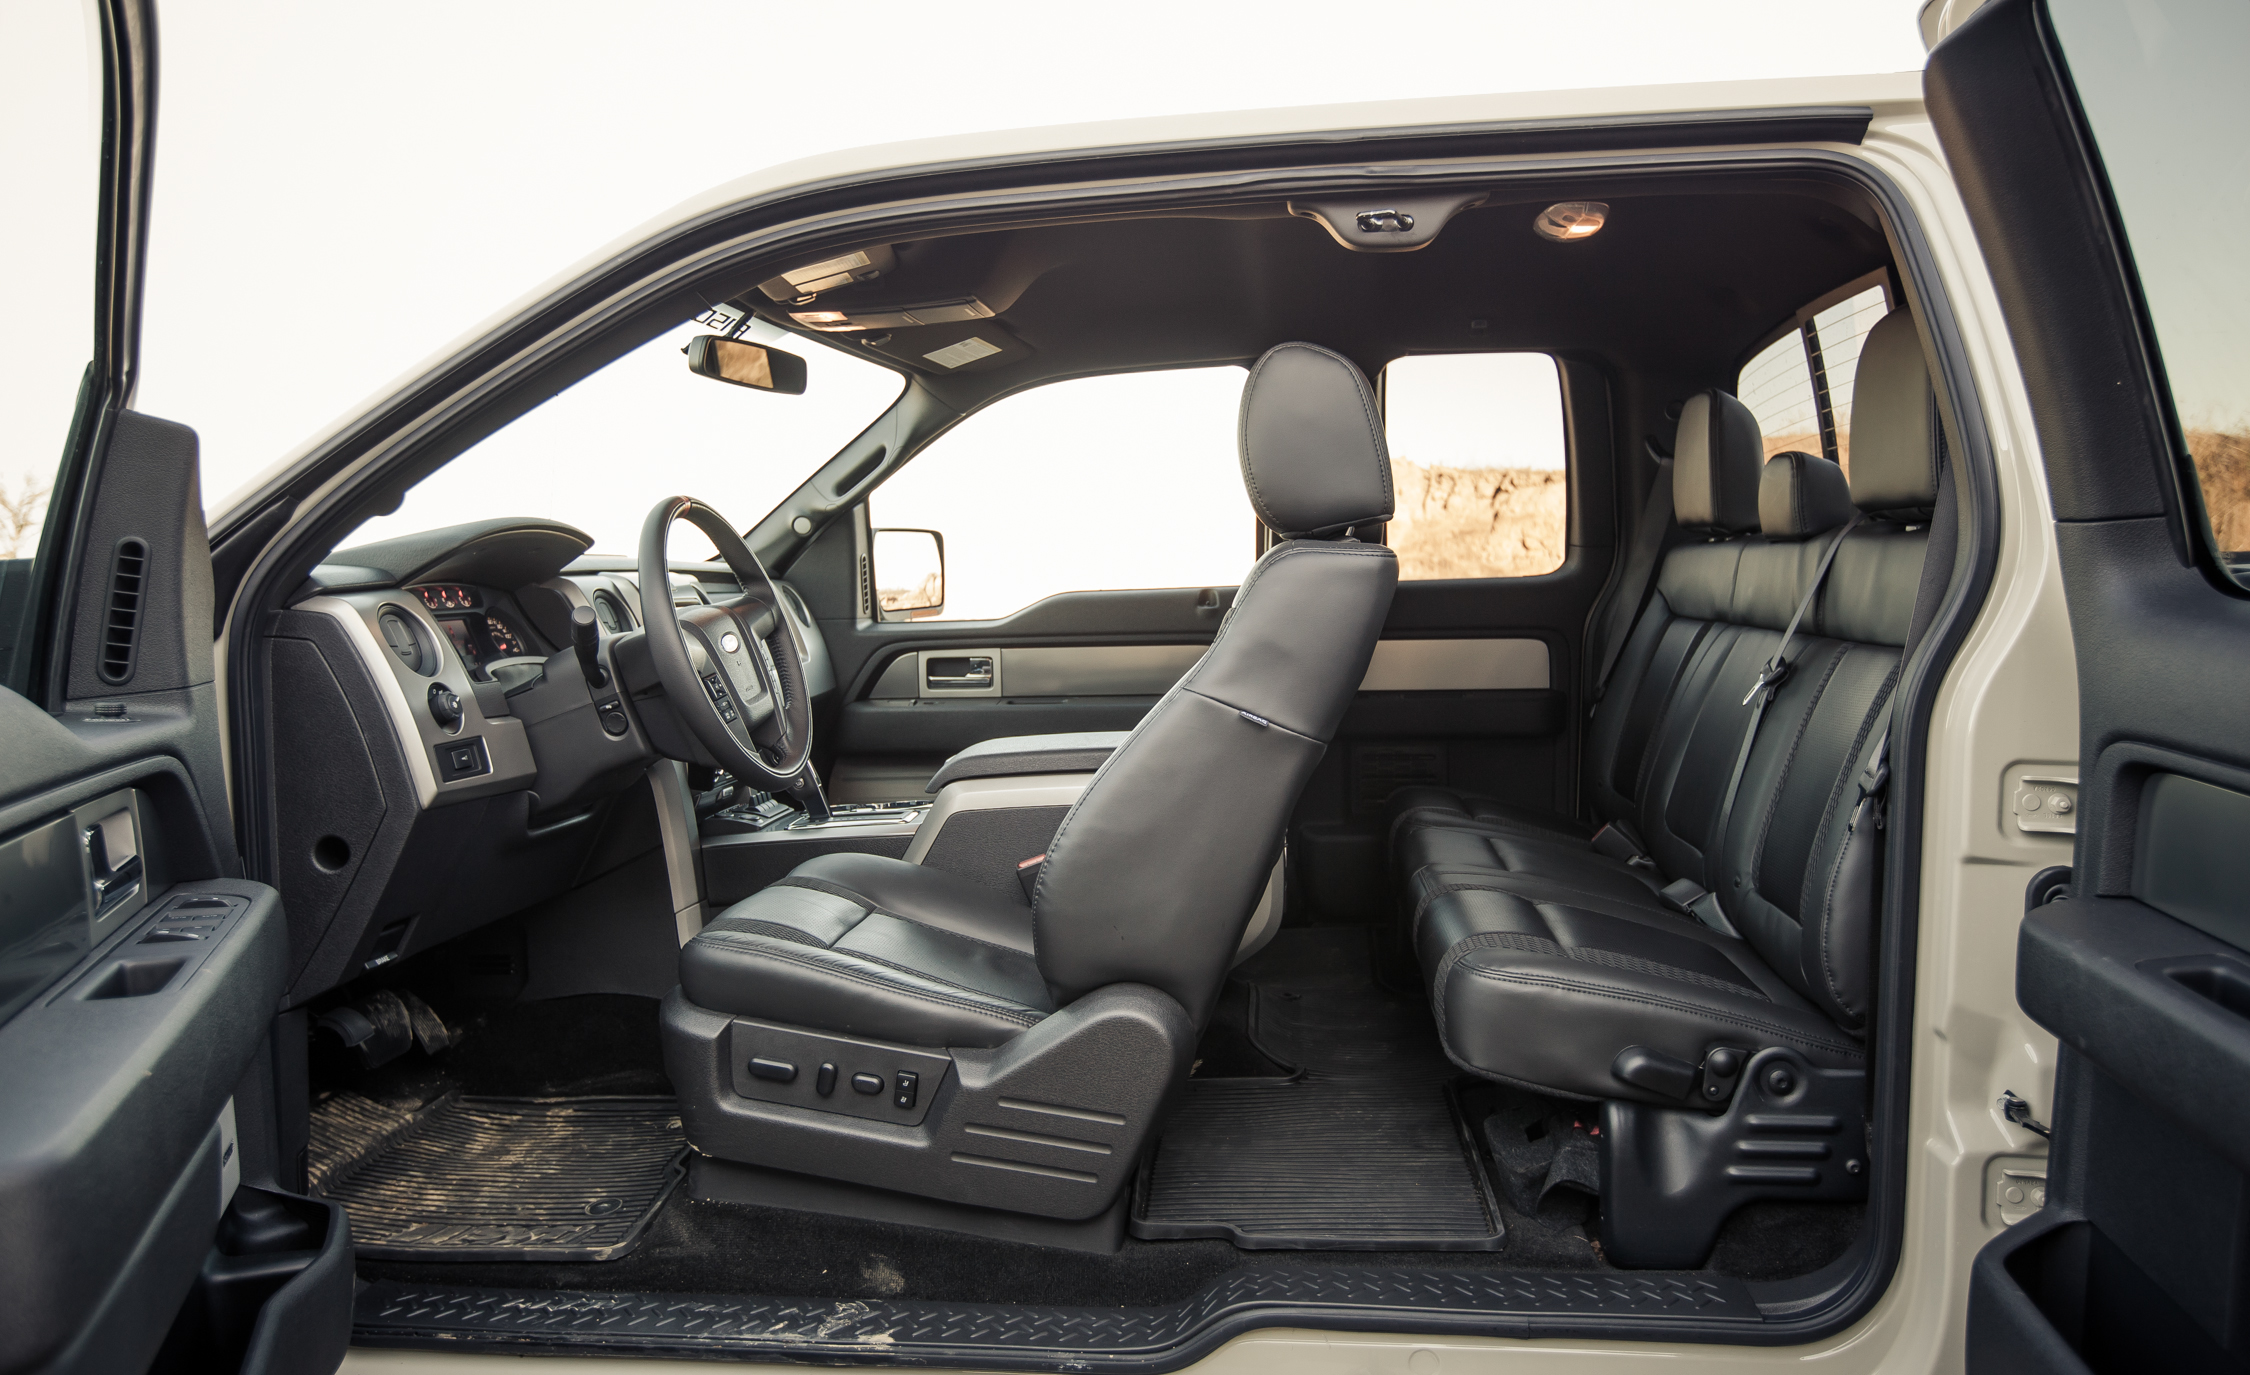 2013 Ford F 150 SVT Raptor SuperCab Interior Seats (Photo 15 of 39)